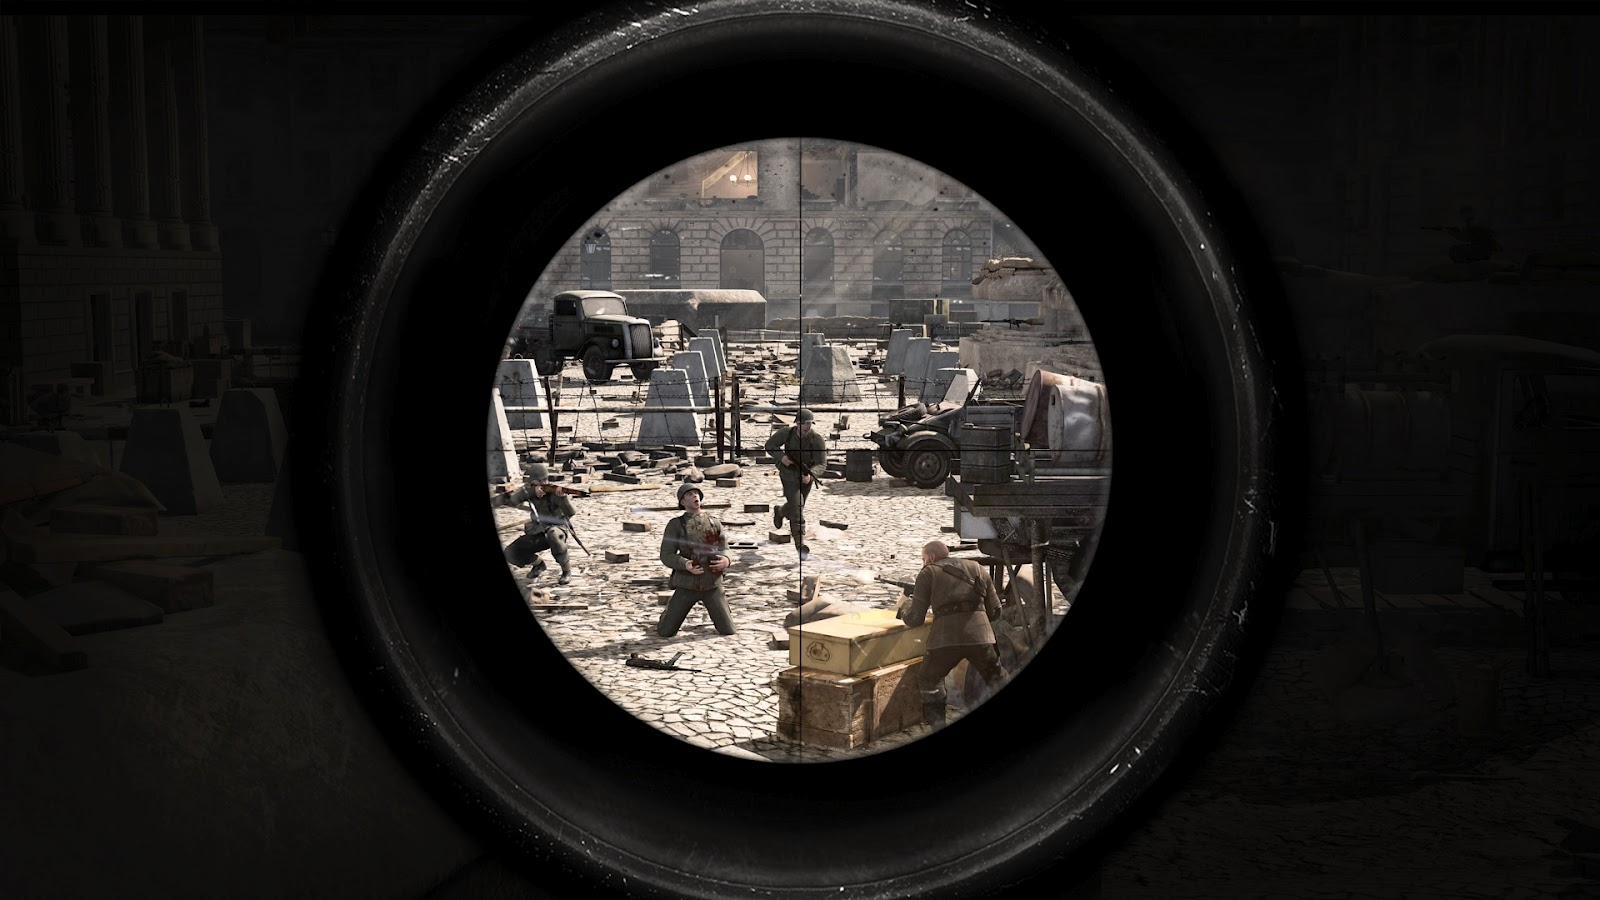 SniperEliteV2wallpapers Sniper Elite V2 Full HD Wallpapers 1080p 1600x900